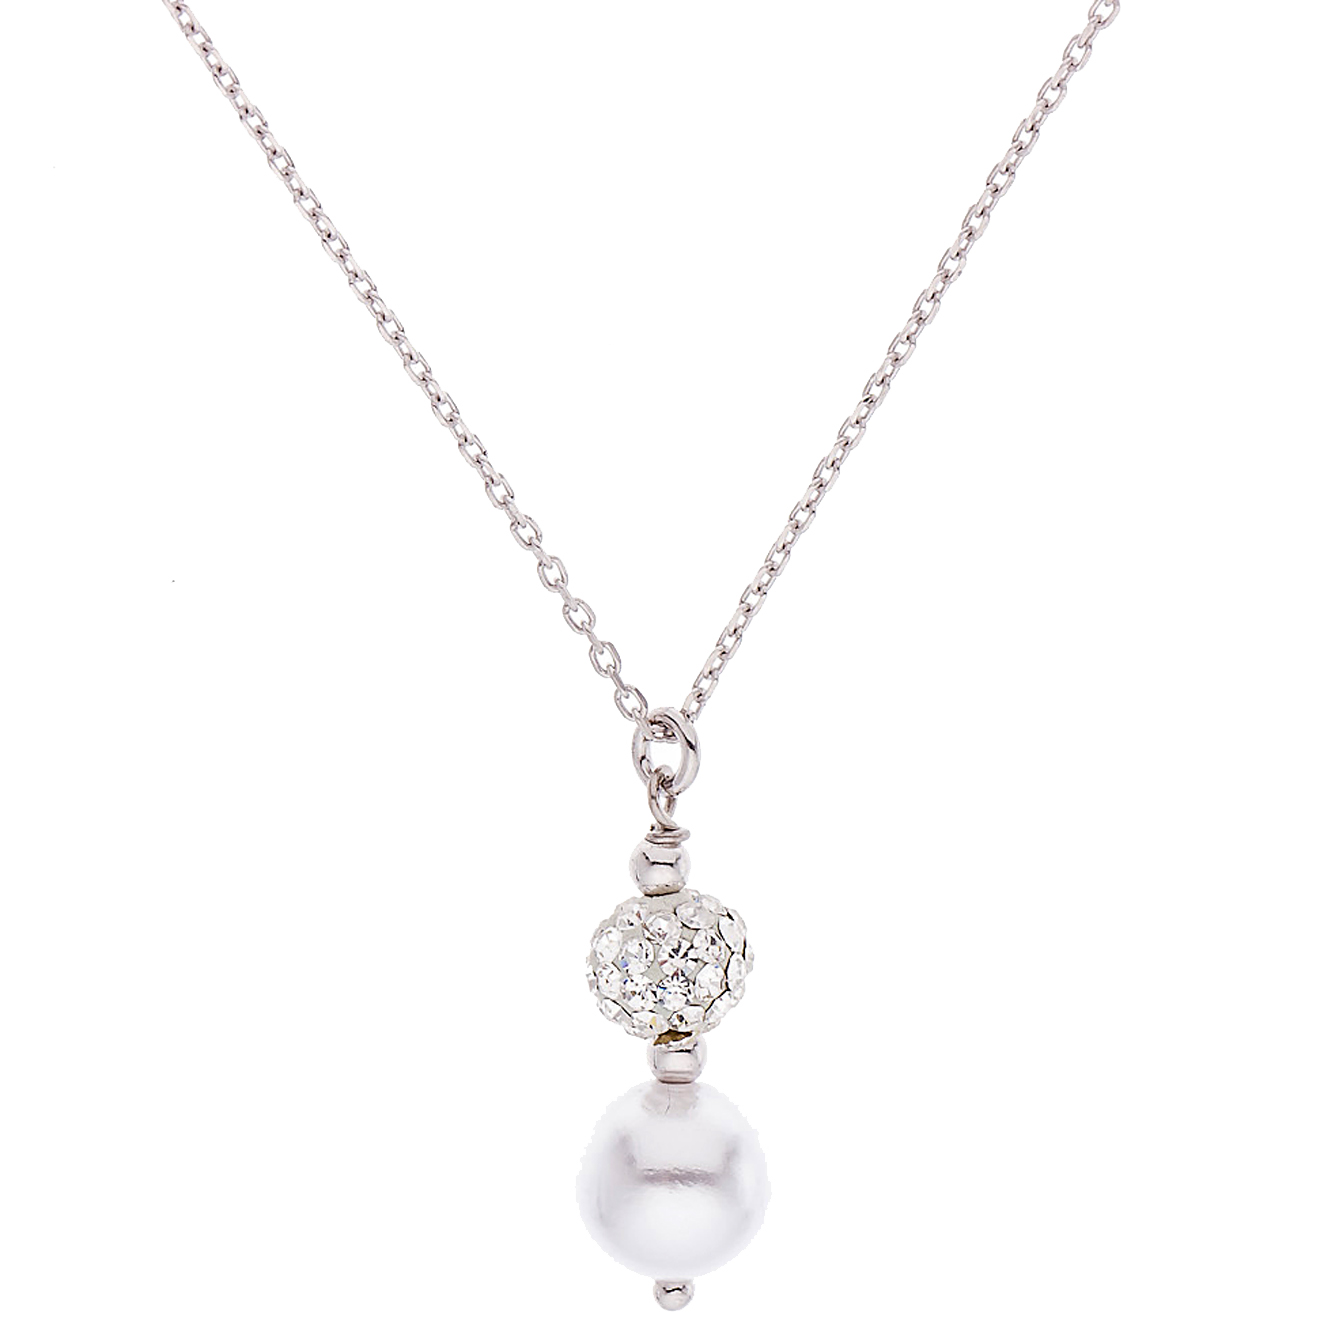 Collier Collbowl Argent Cristal & Perle blanche